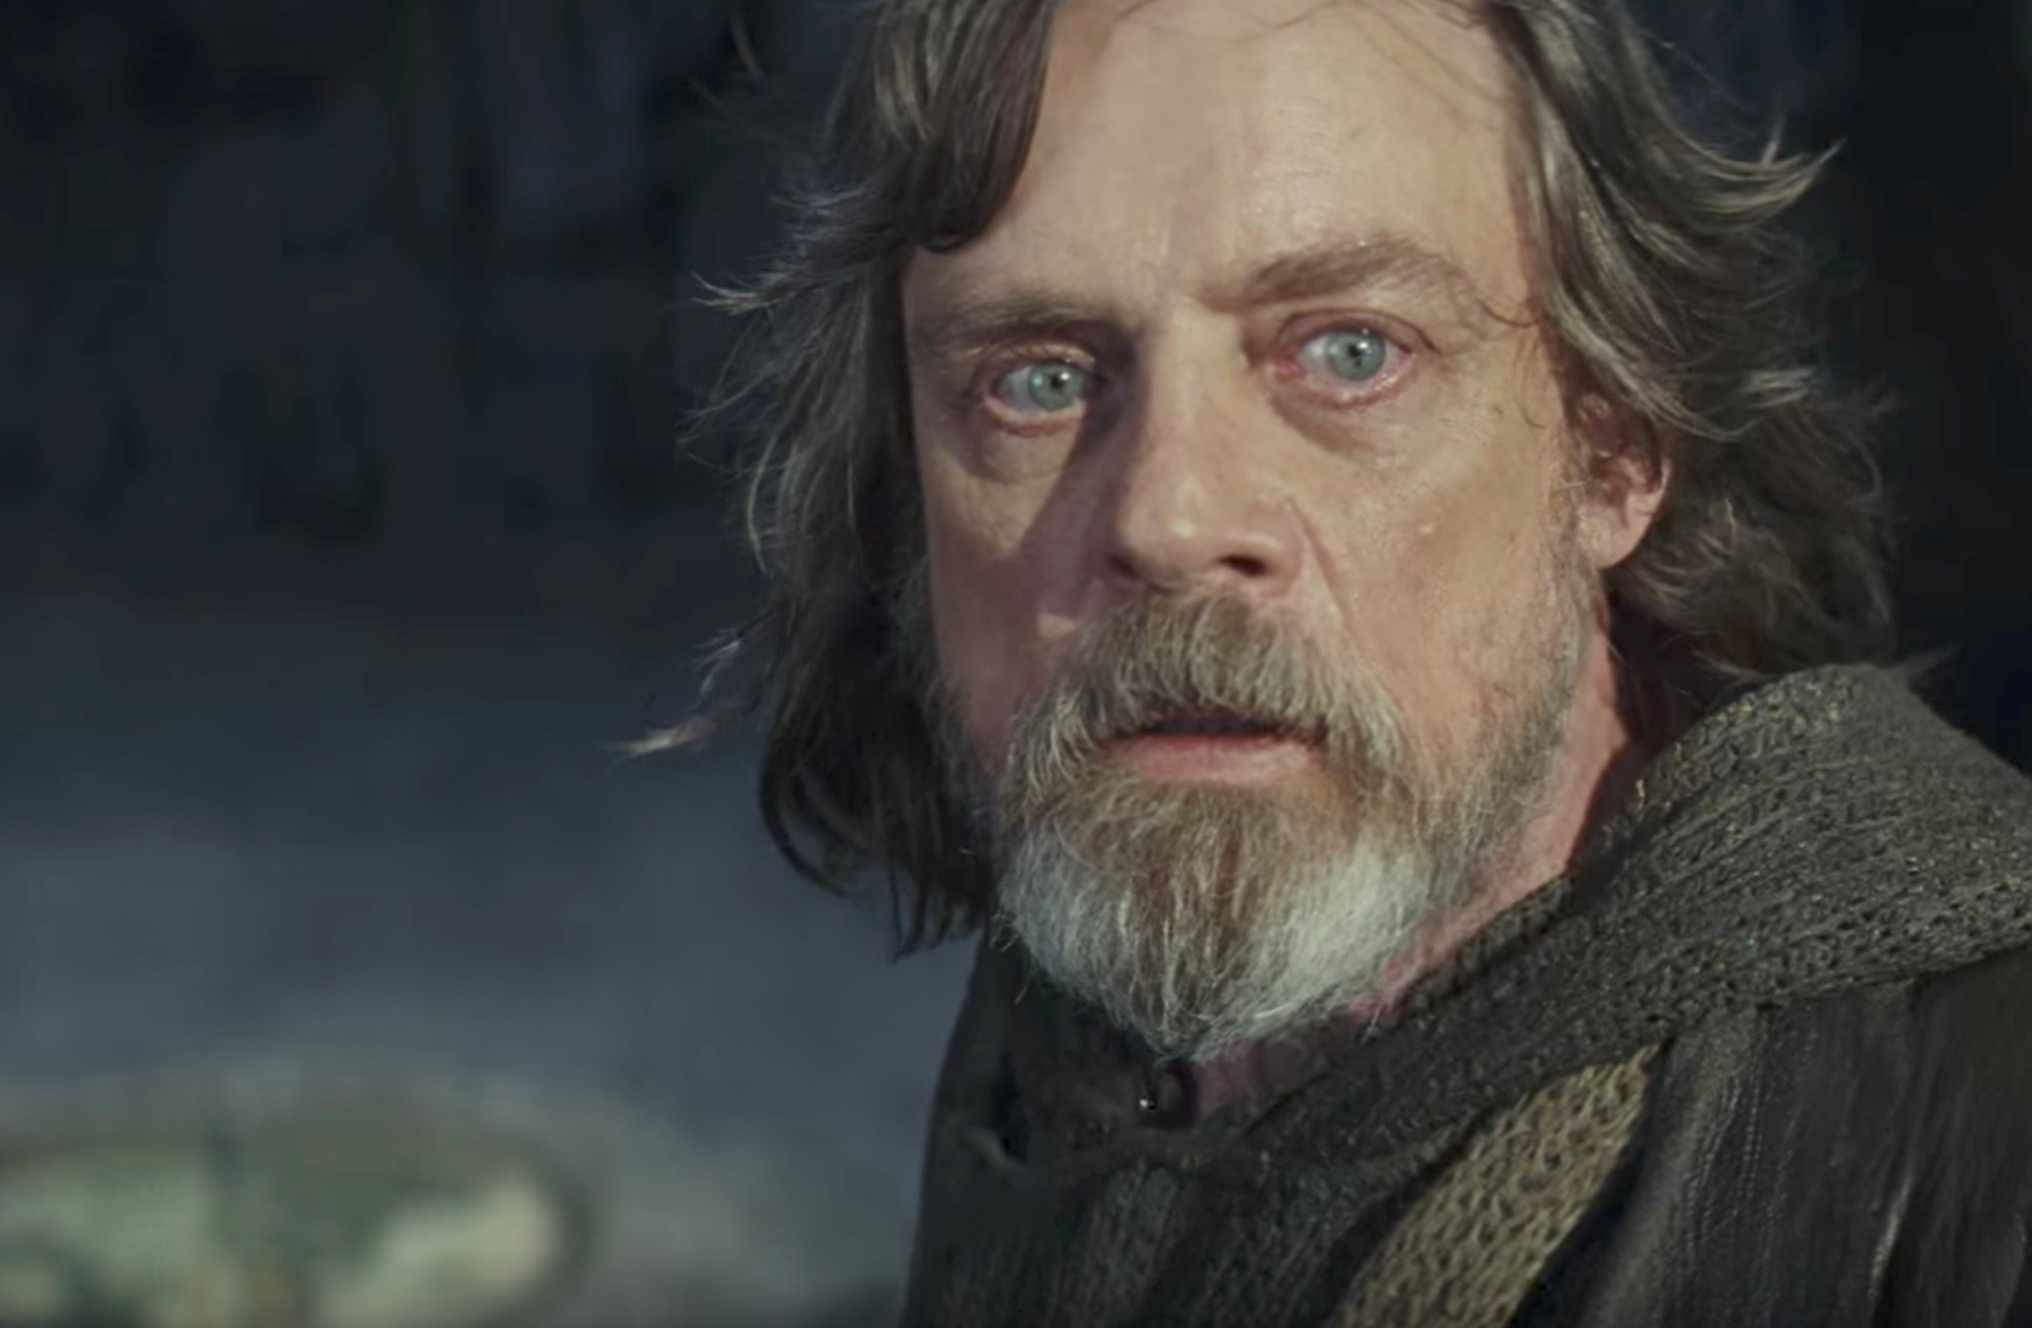 Luke Skywalker in the latest Star Wars: Last Jedi trailer (YouTube, JG)